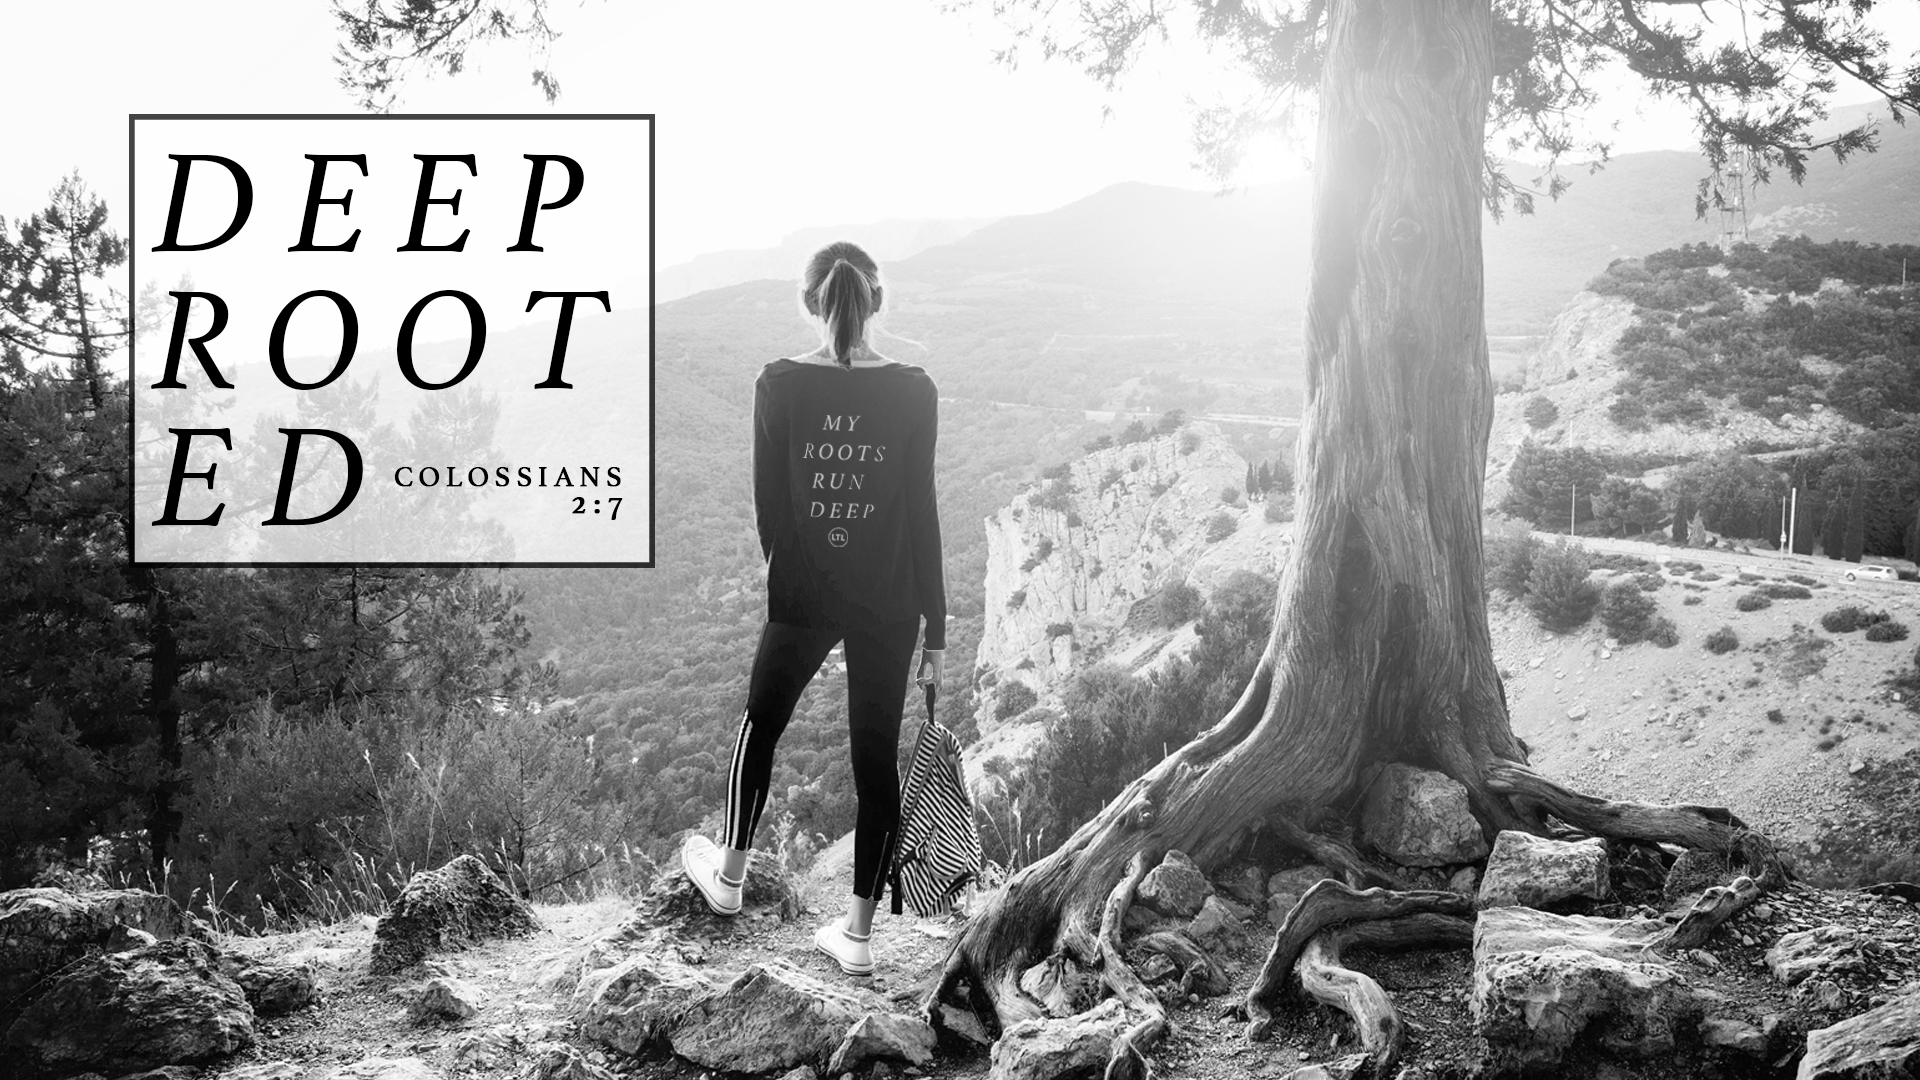 DEEP ROOTED -